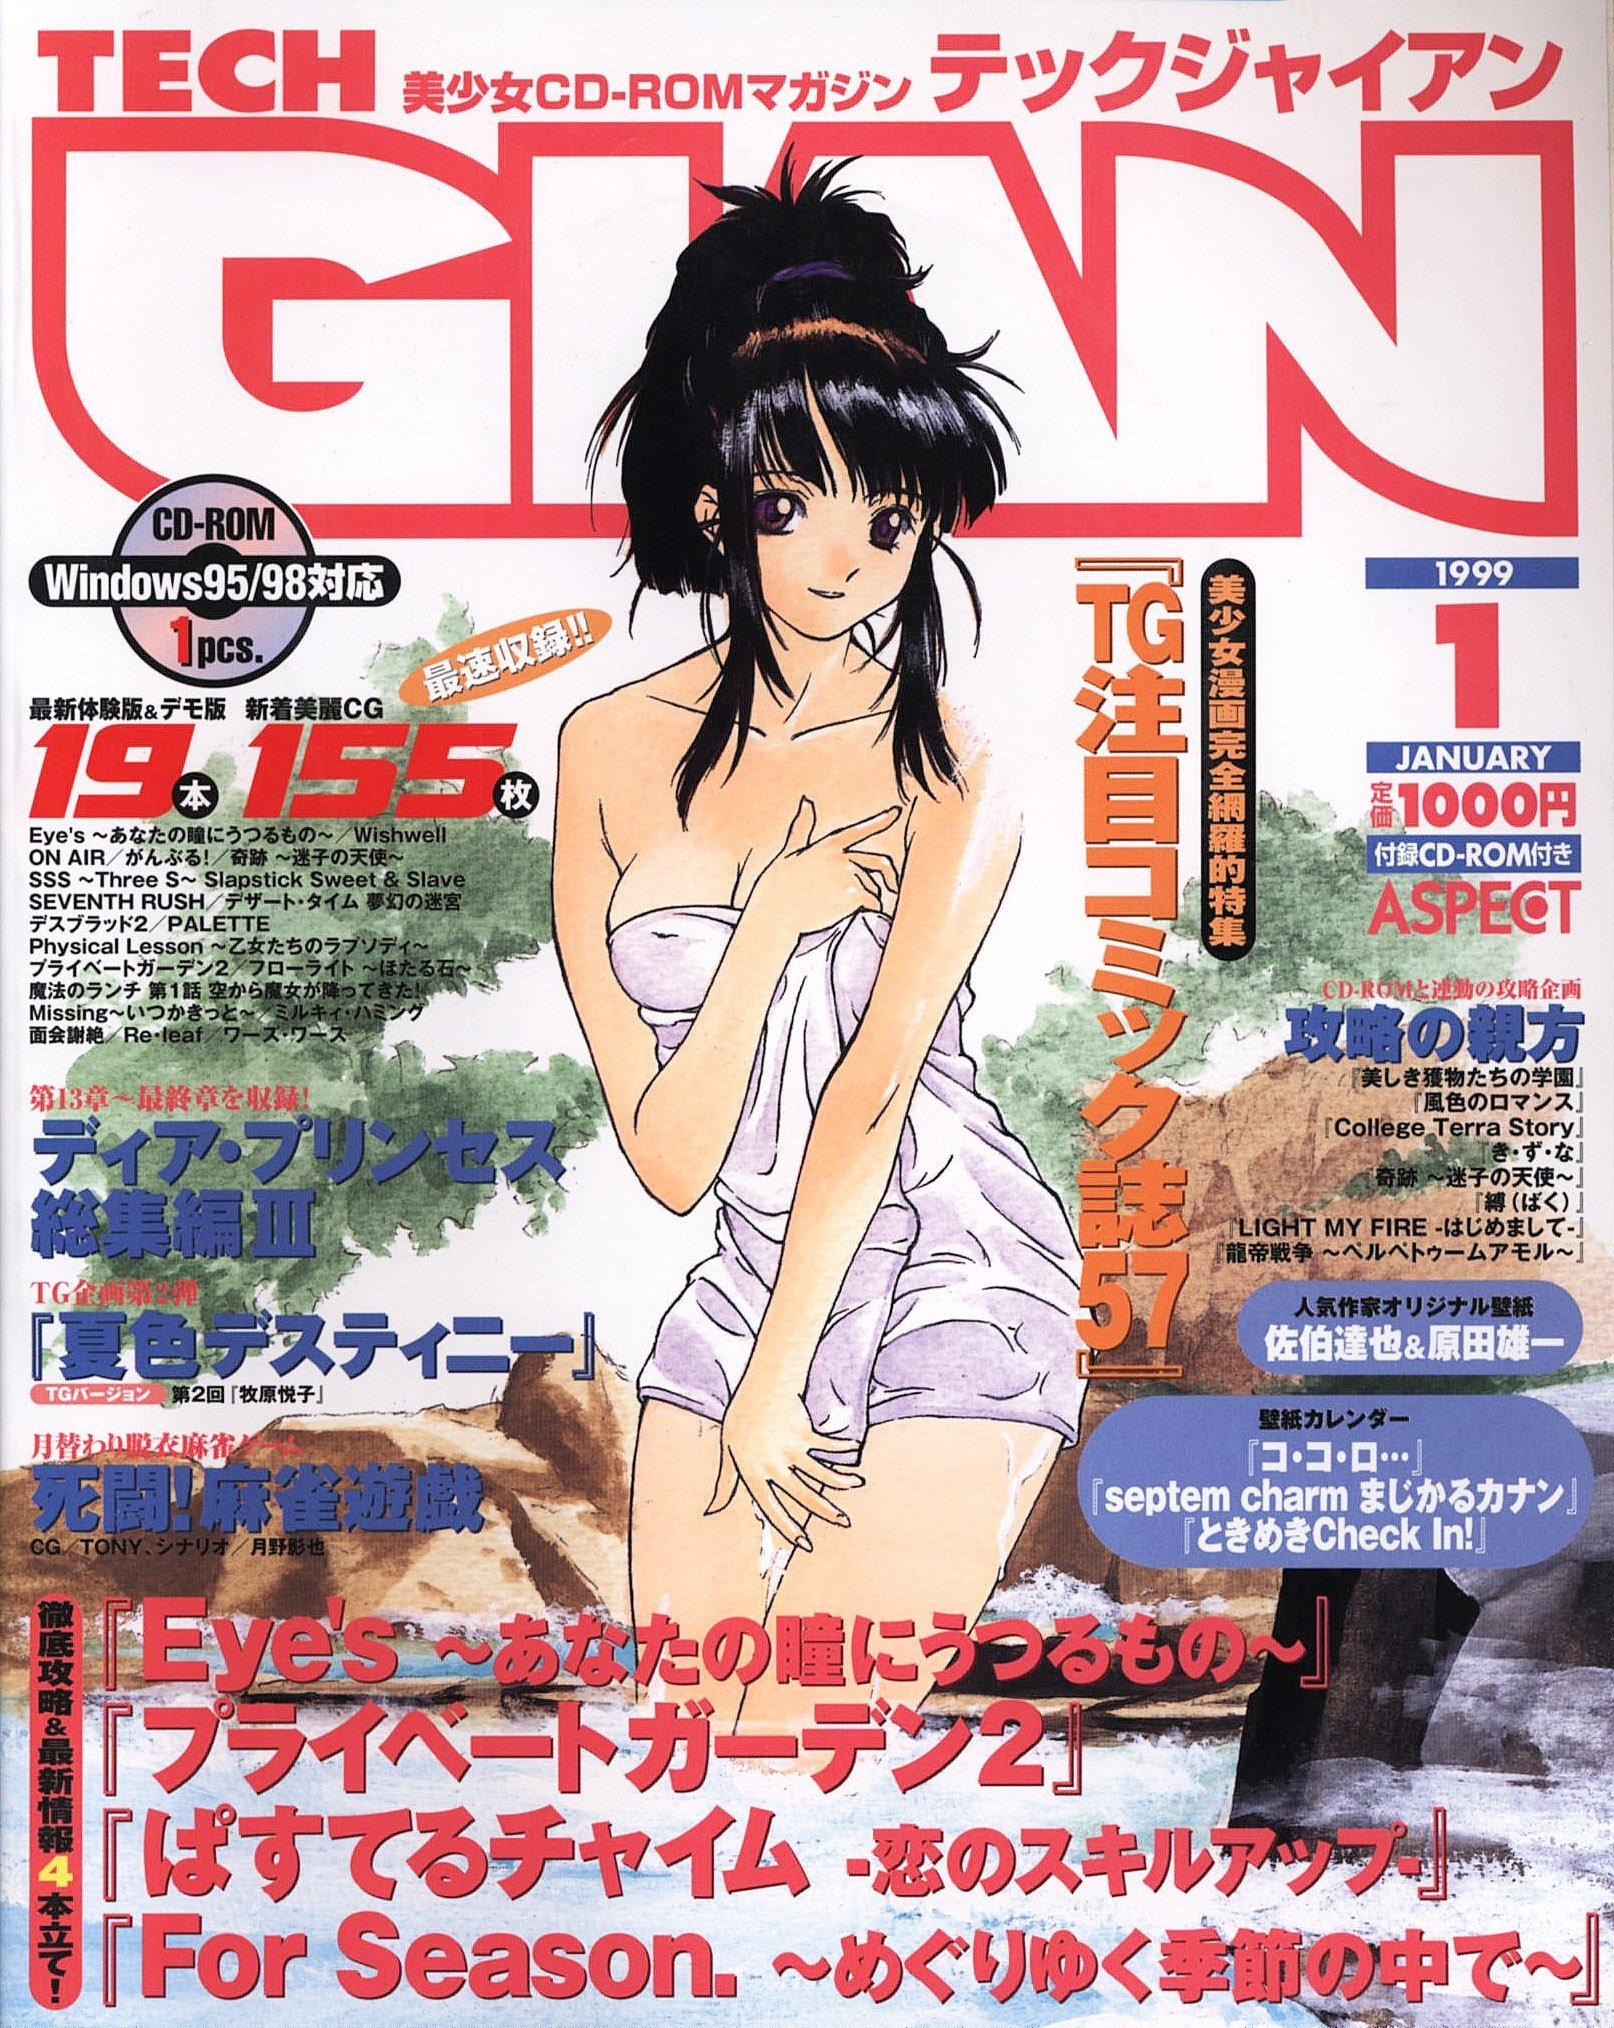 Tech Gian Issue 027 (January 1999)